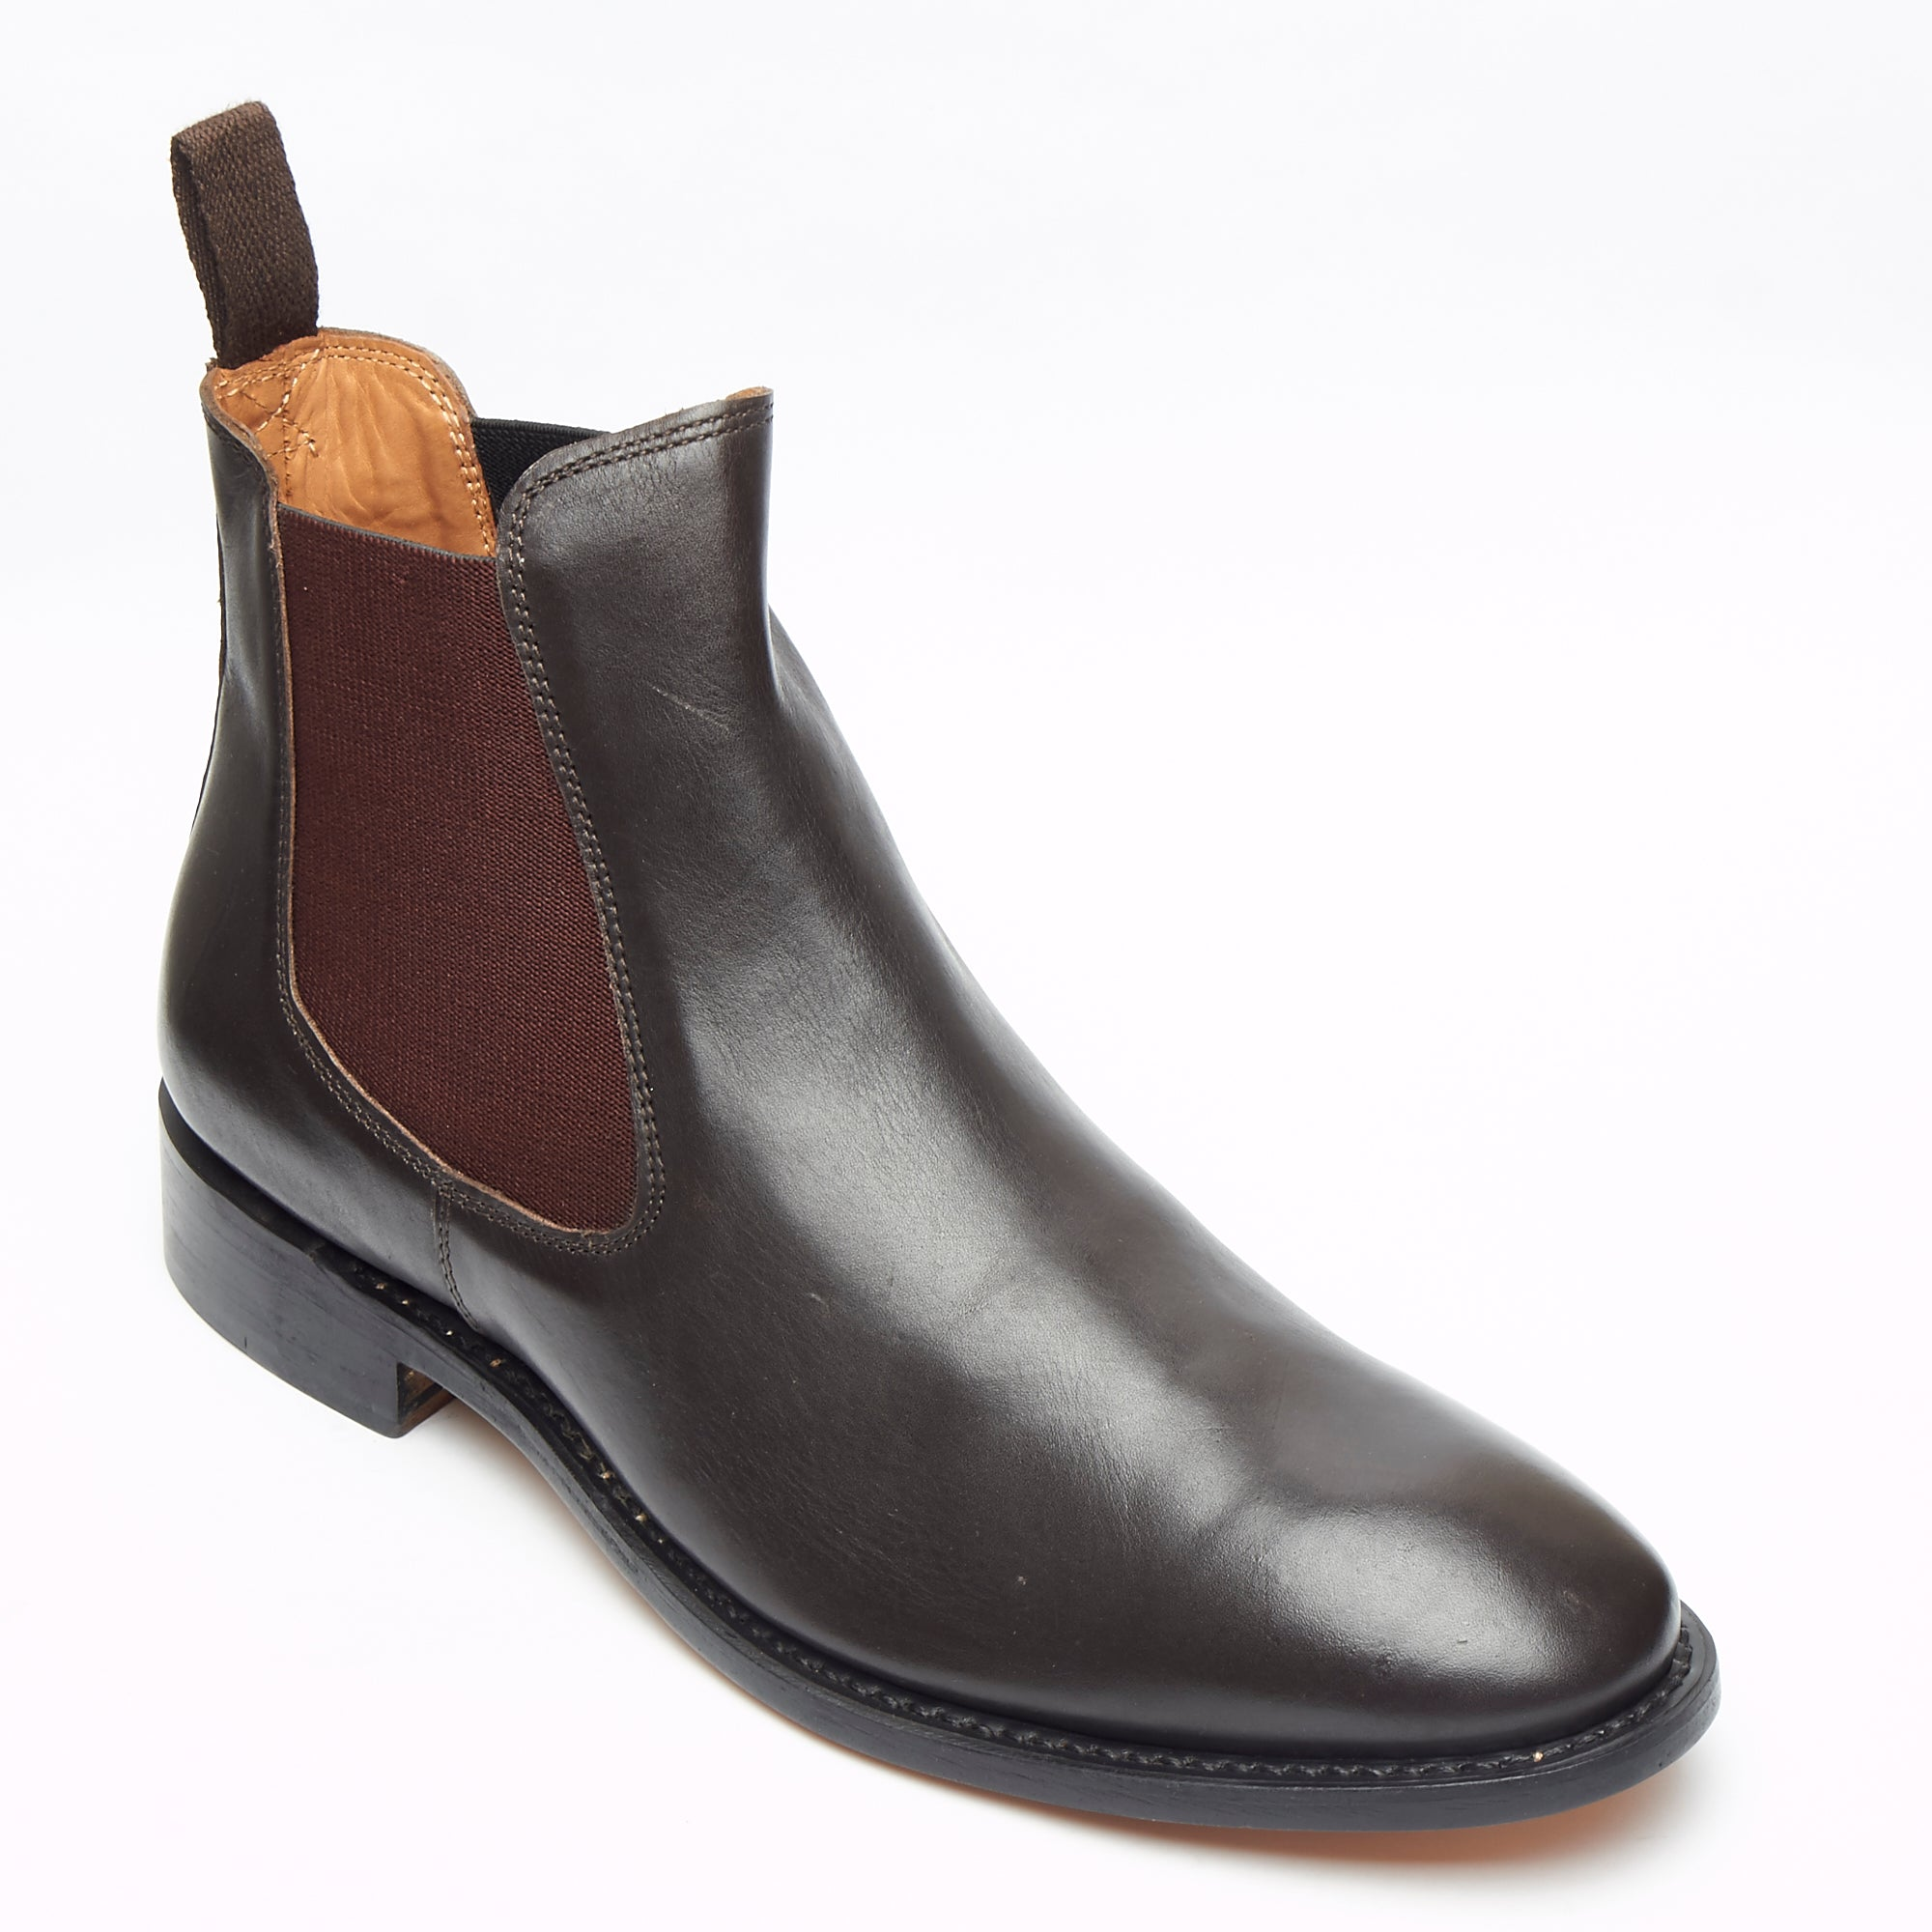 Mens Goodyear Welted Leather Chelsea Boots - 27817 Brown